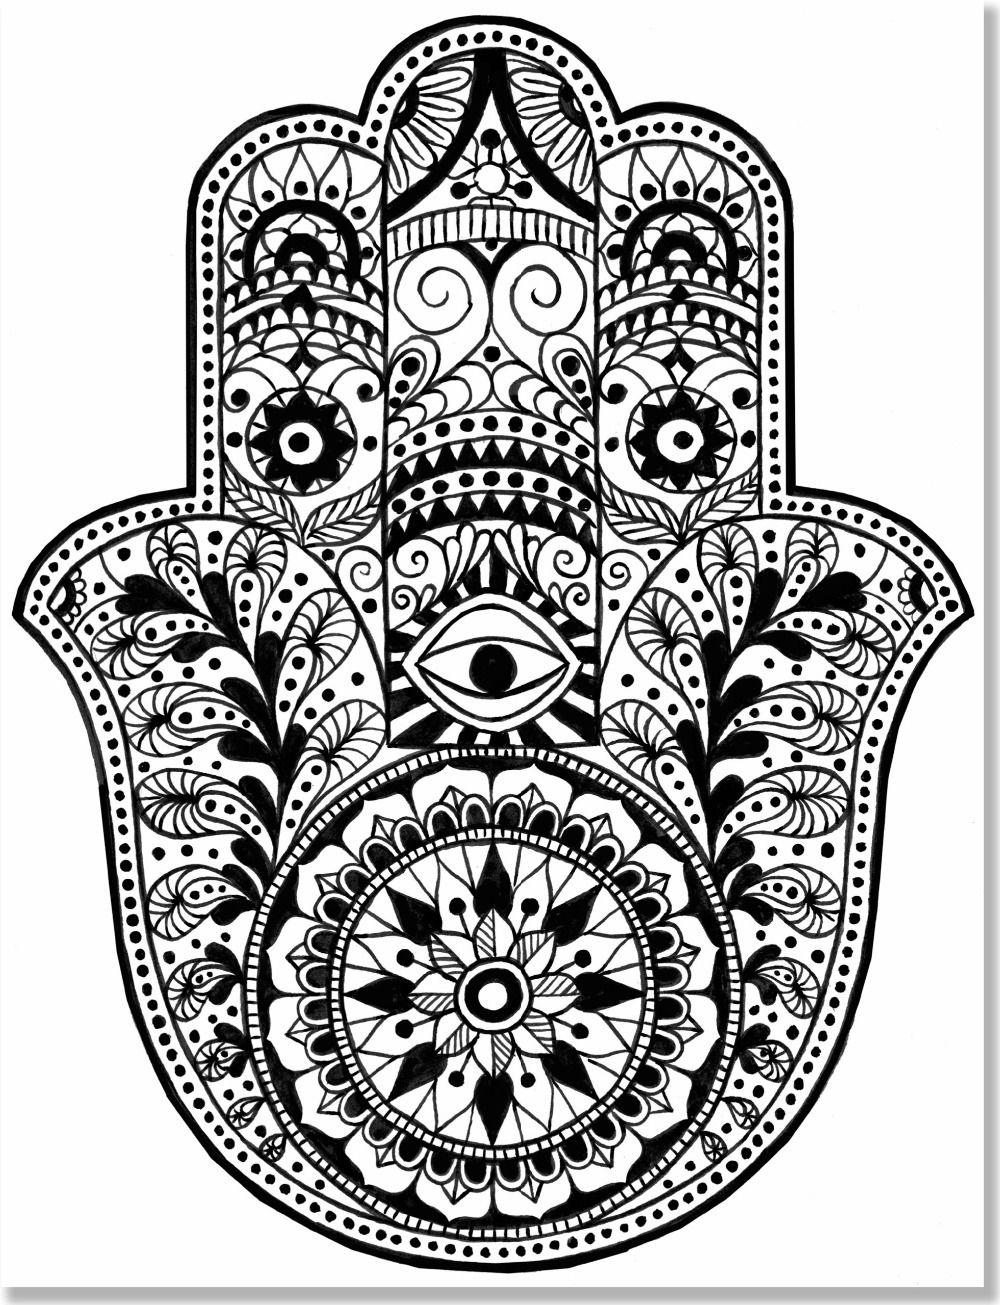 Mandala Designs Coloring Book (31 stress-relieving designs ...